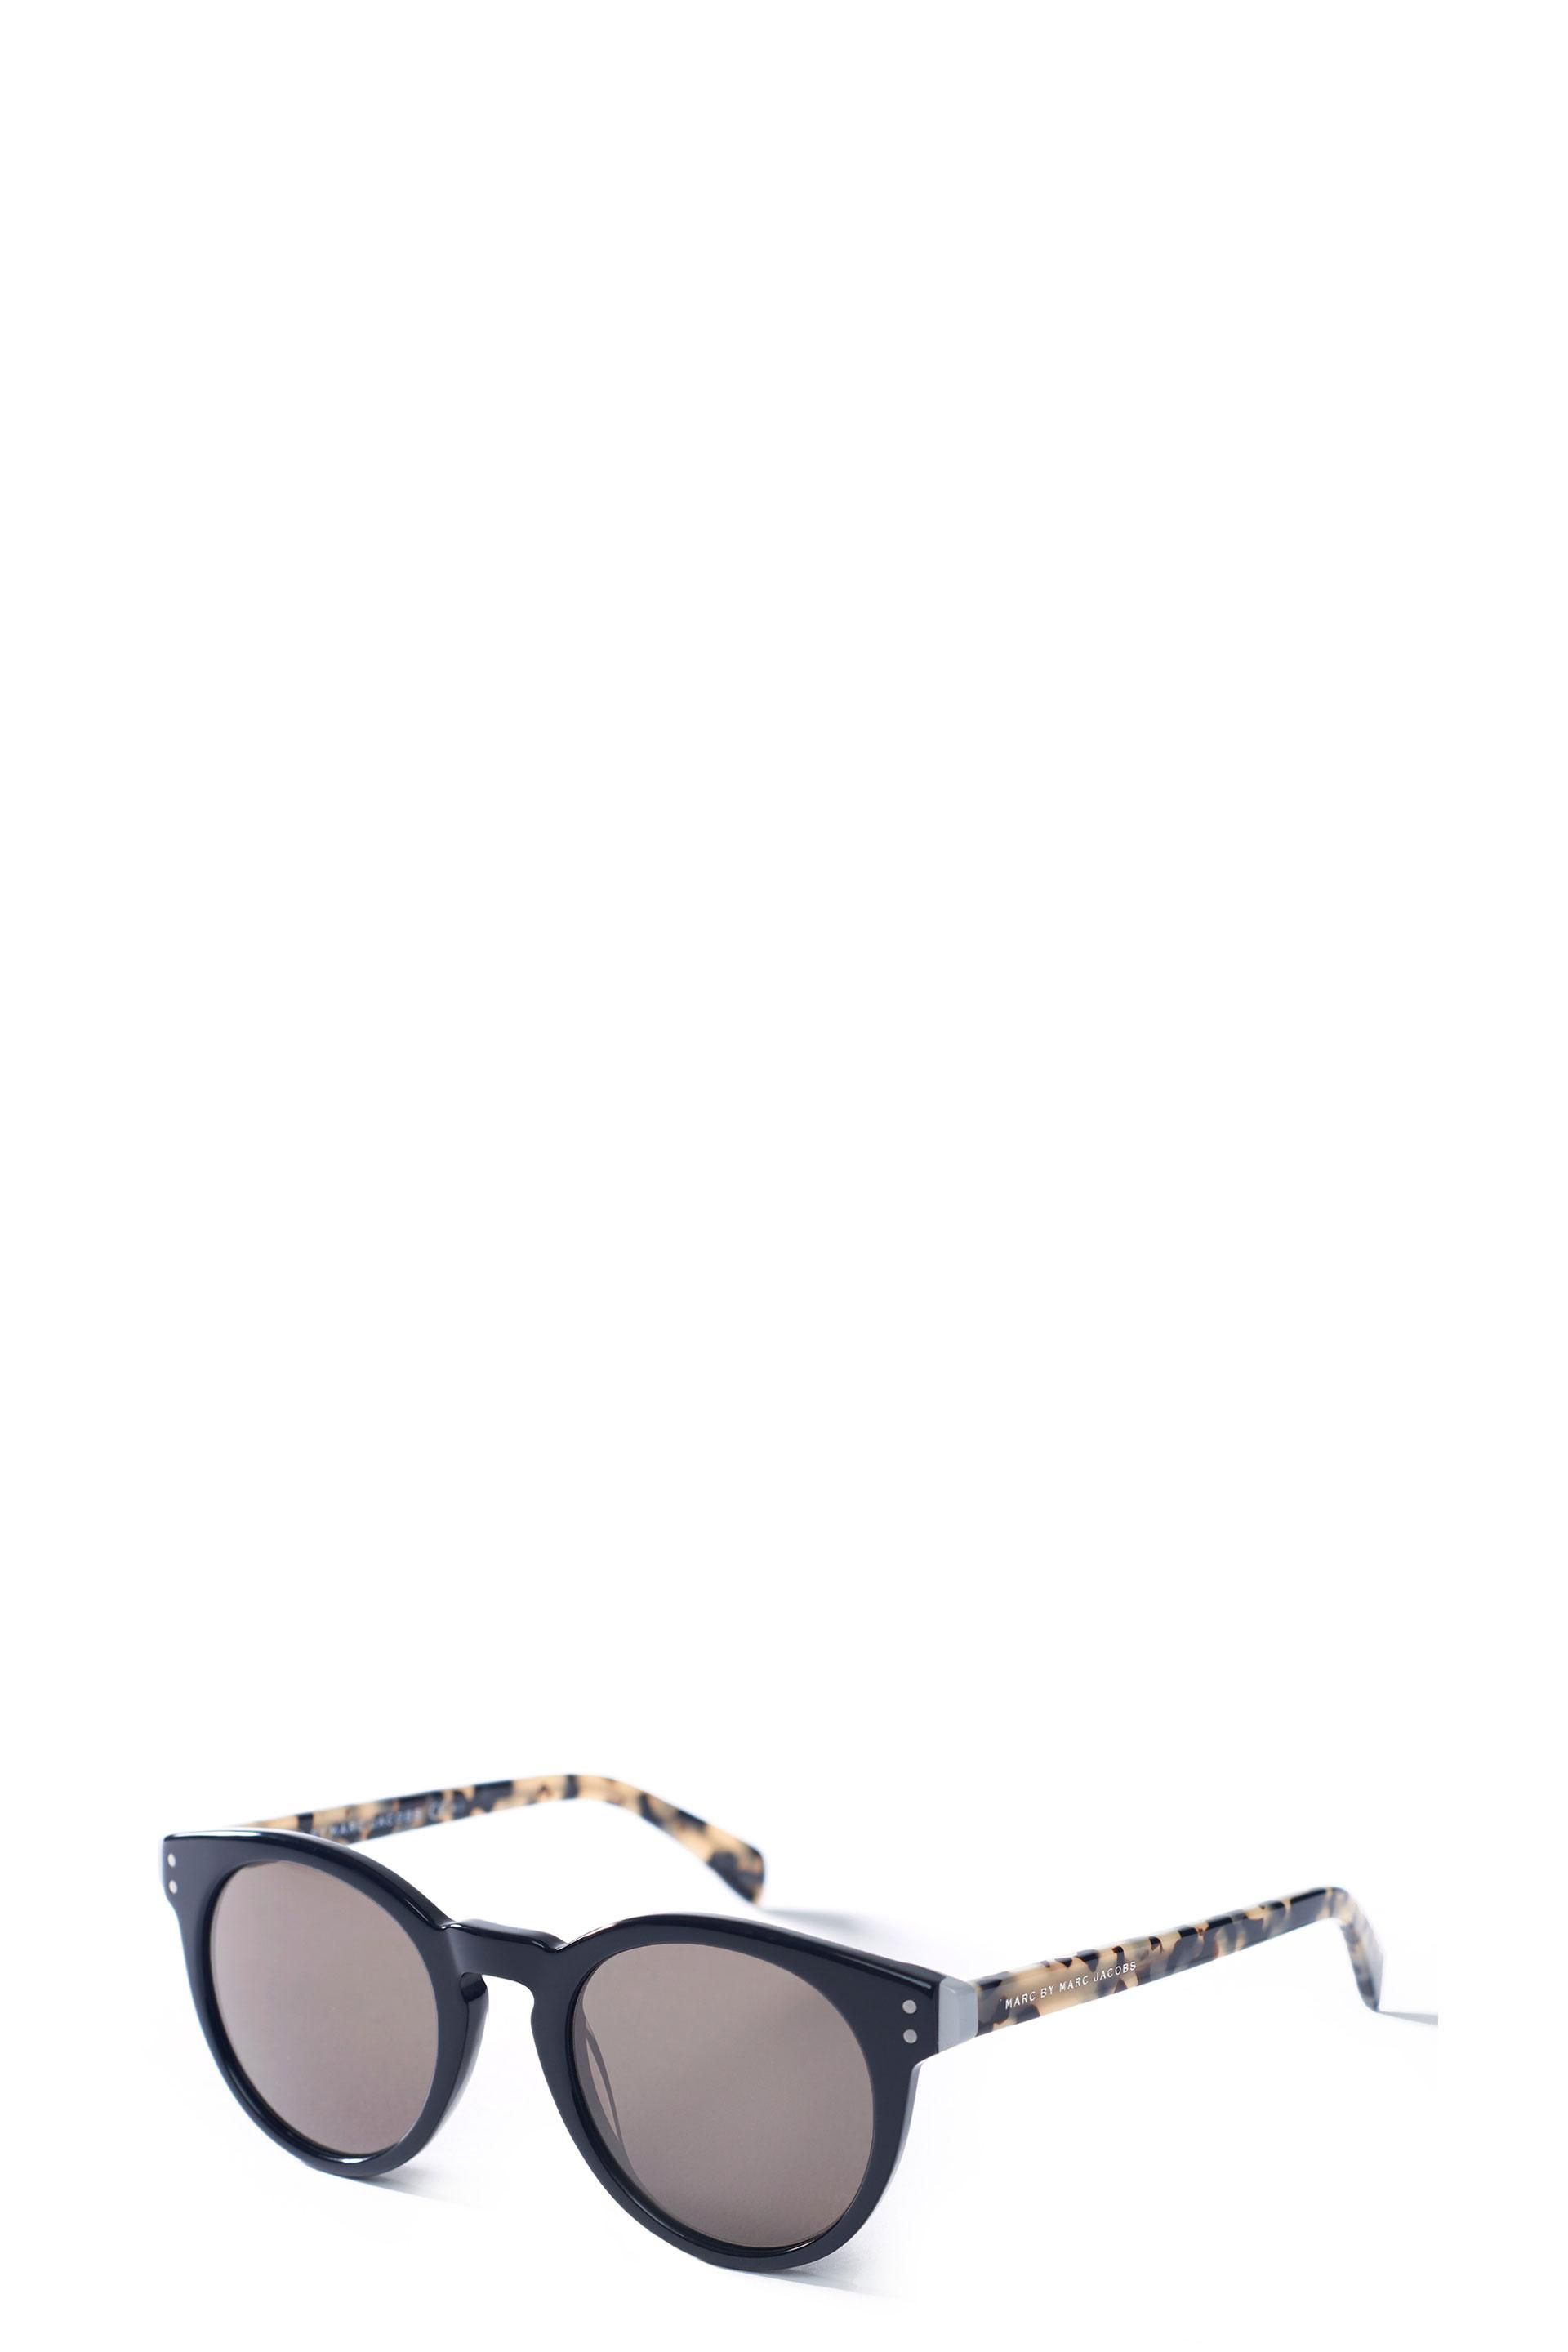 22398ba47d8 The Marc Jacobs Two Dot Sunglasses feature acetate front and temples with  color-assembled acetates